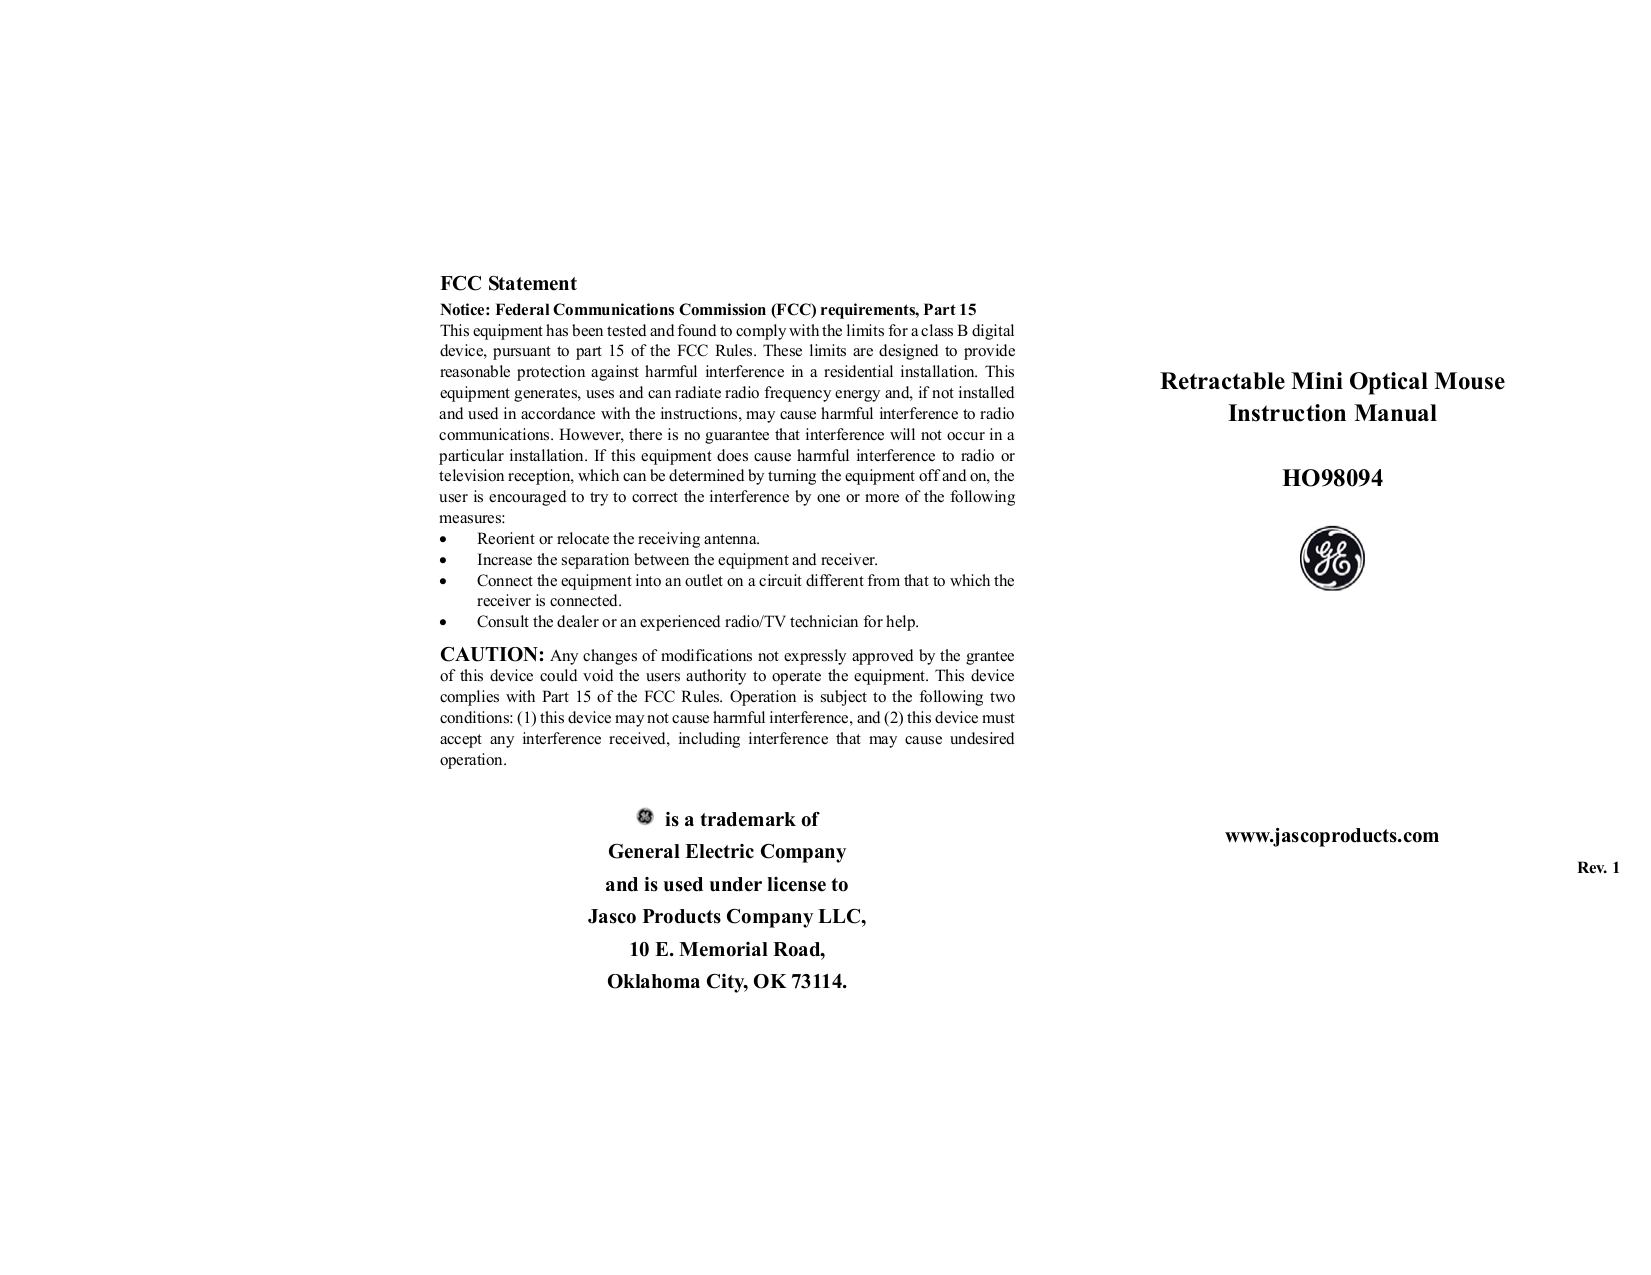 pdf for Jasco Mouse HO98094 manual